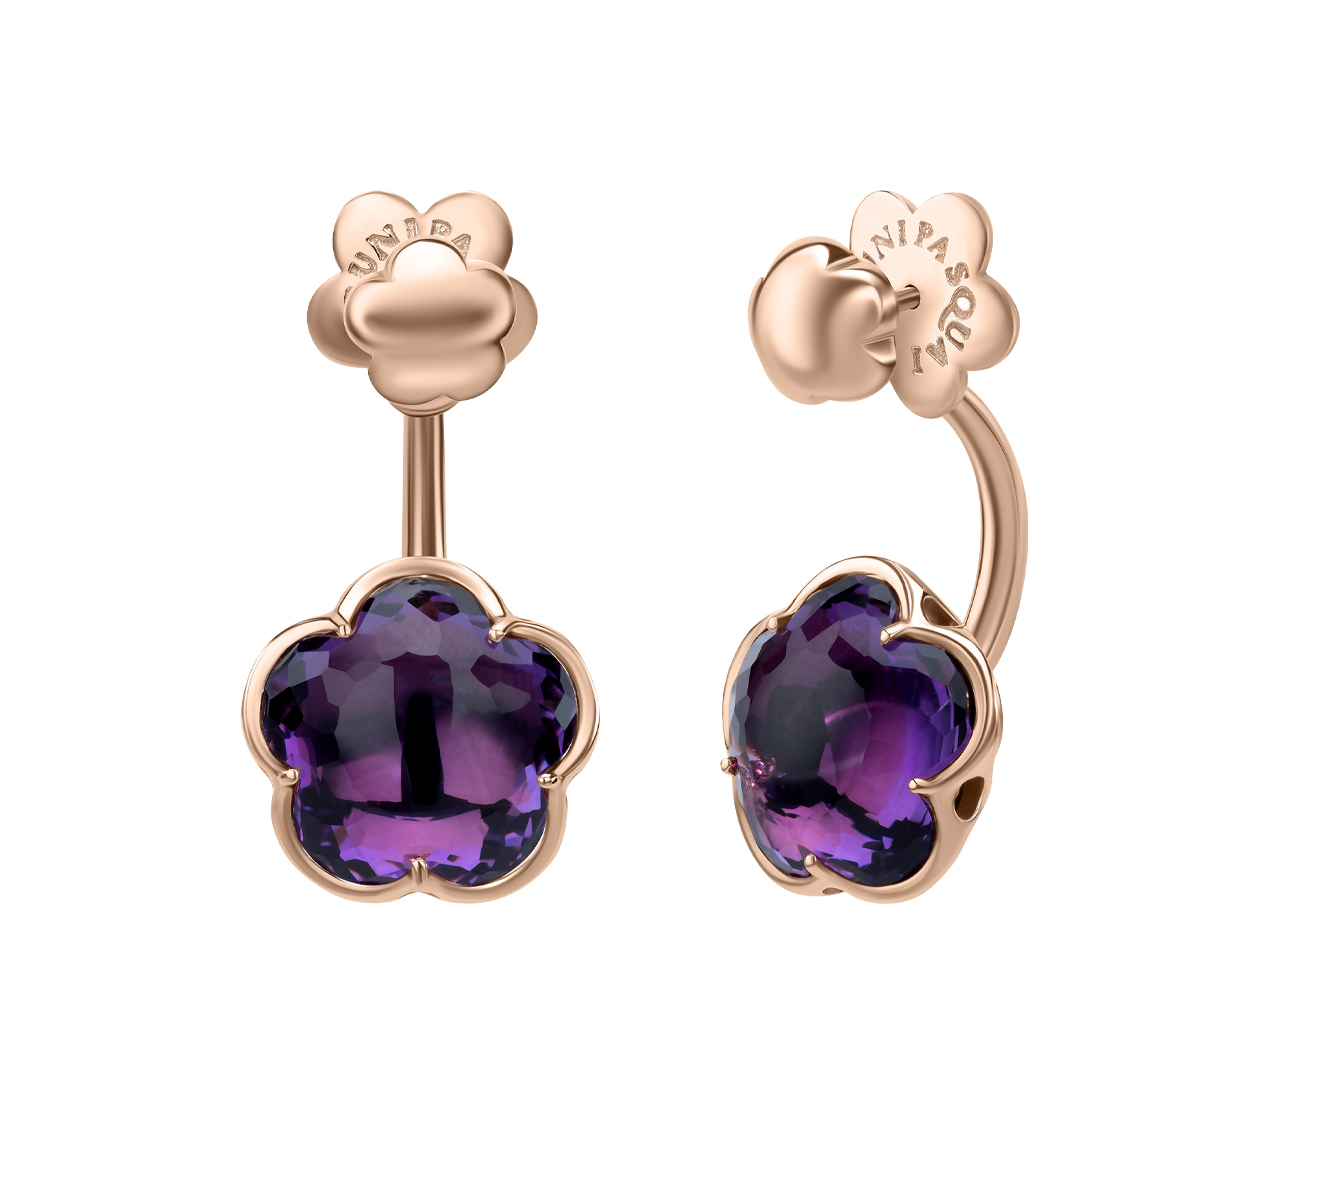 BON TON EARRINGS WITH DEEP VIOLET AMETHYST